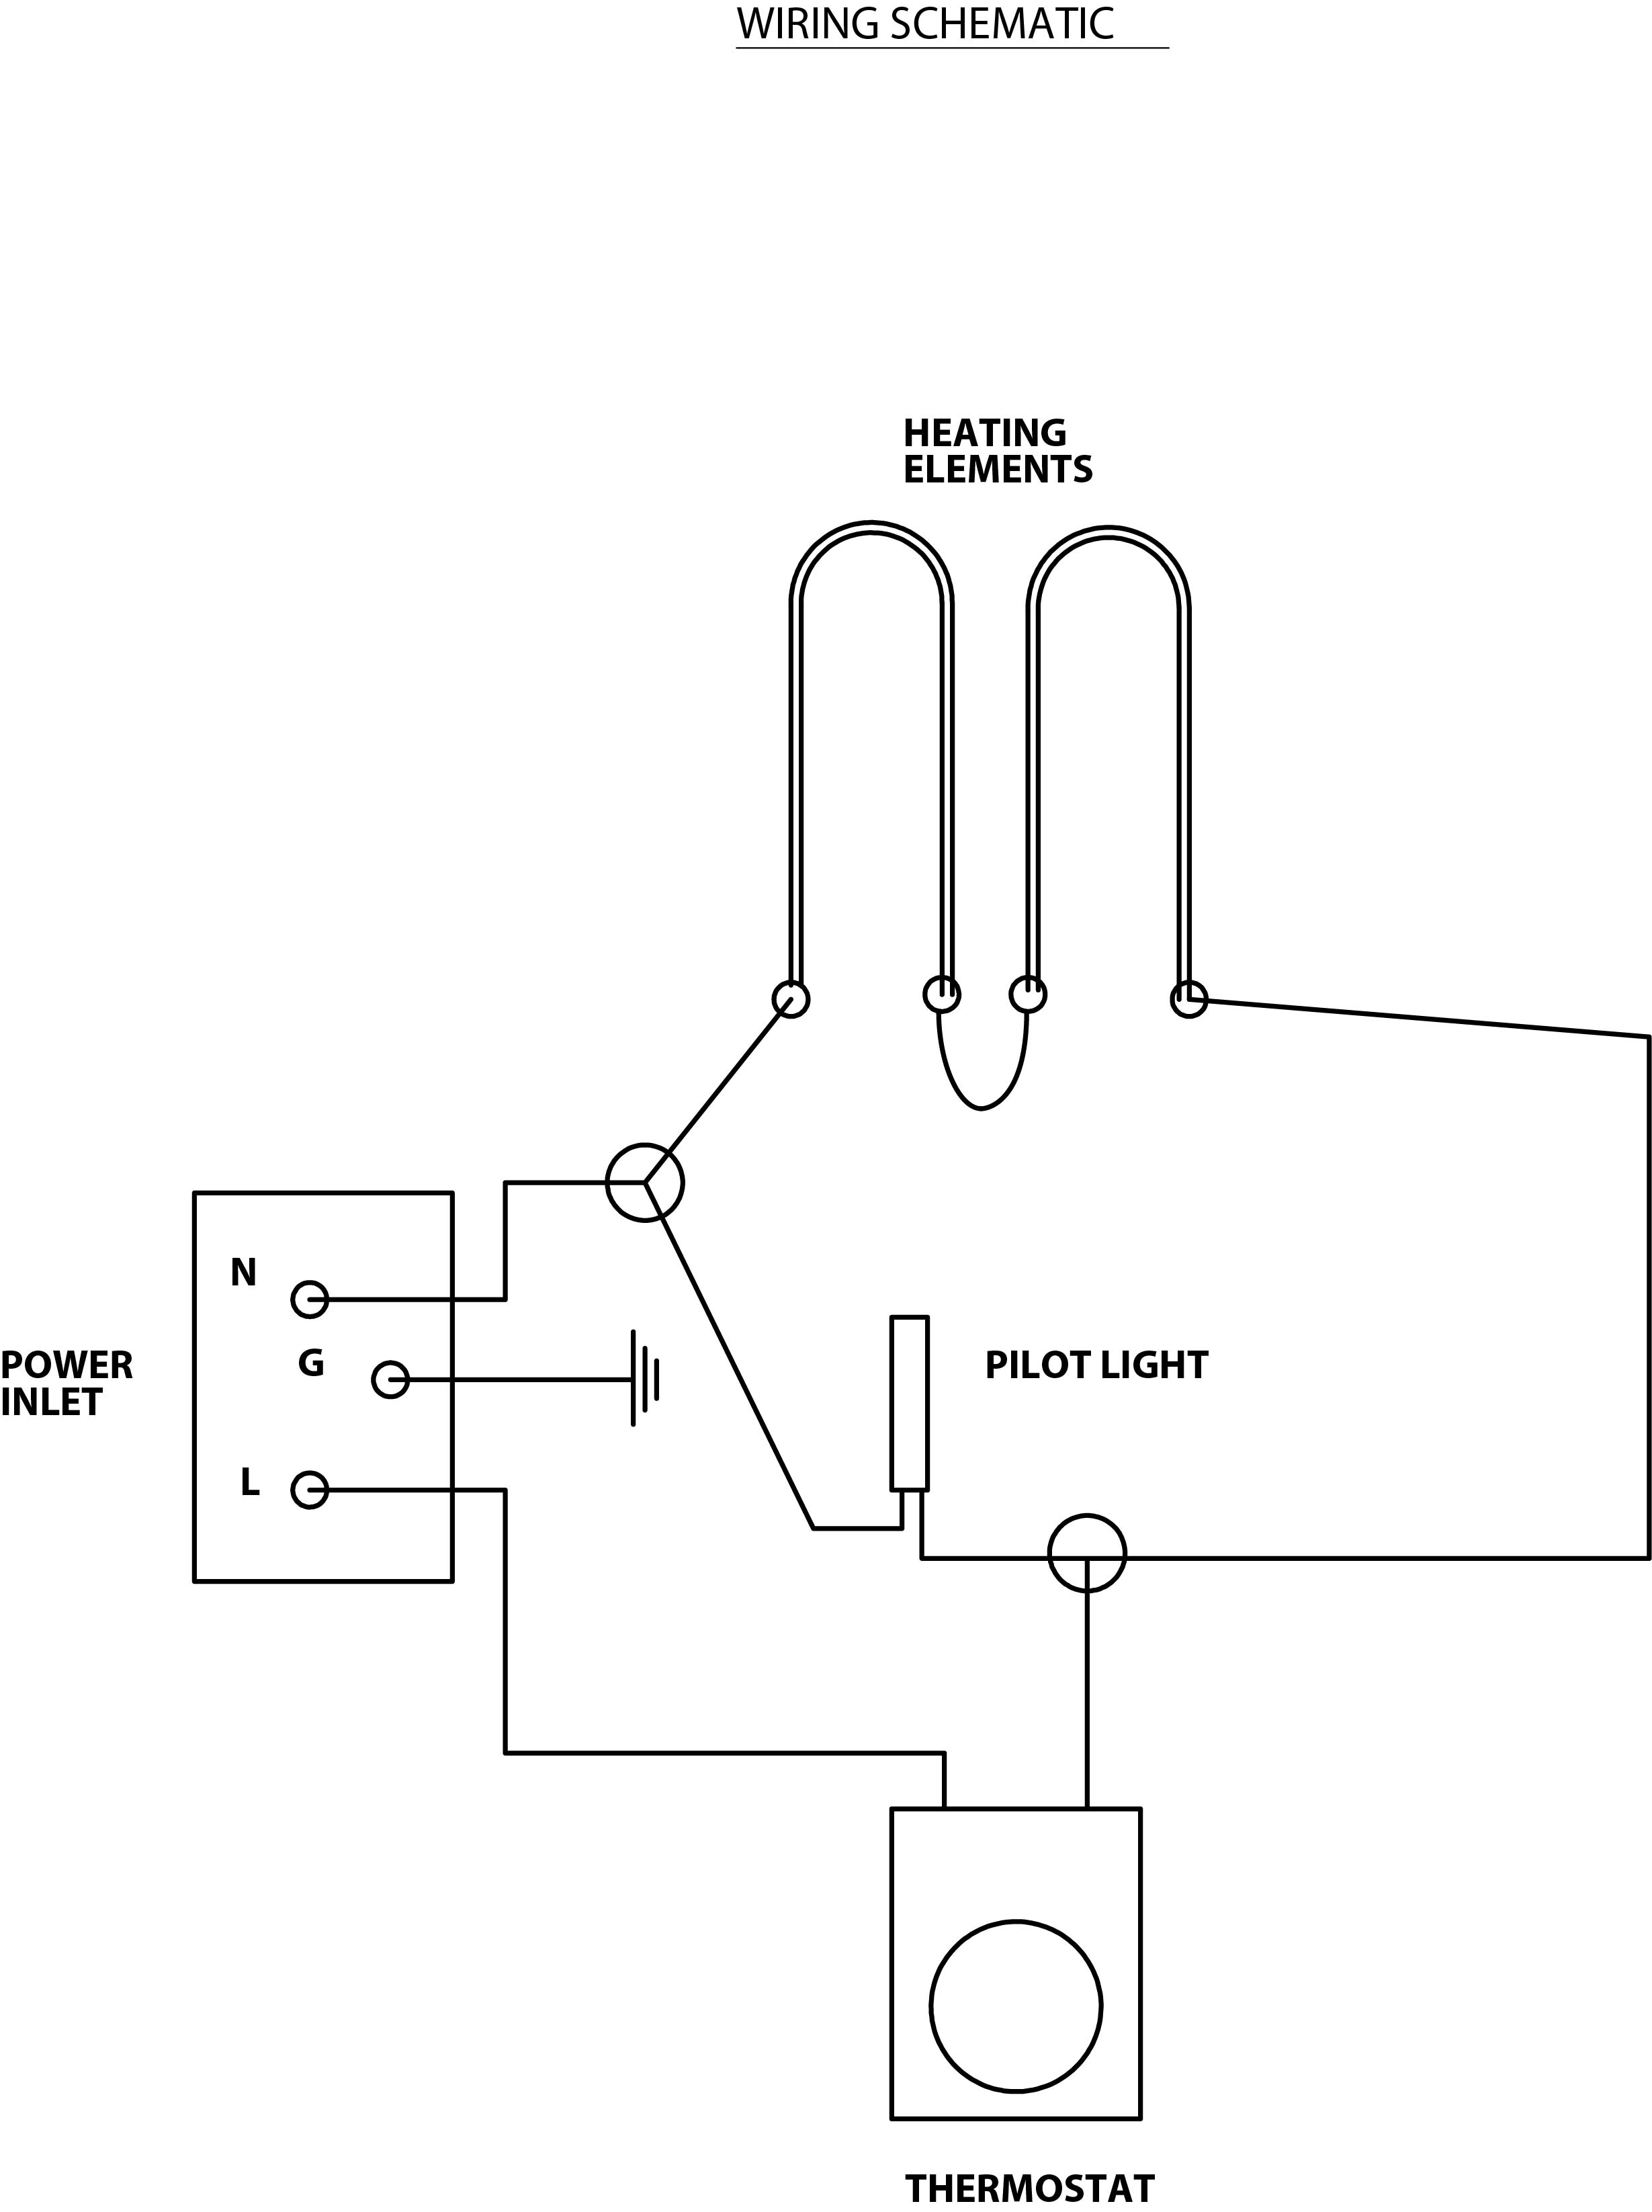 wiring a heating element  wiring  free engine image for